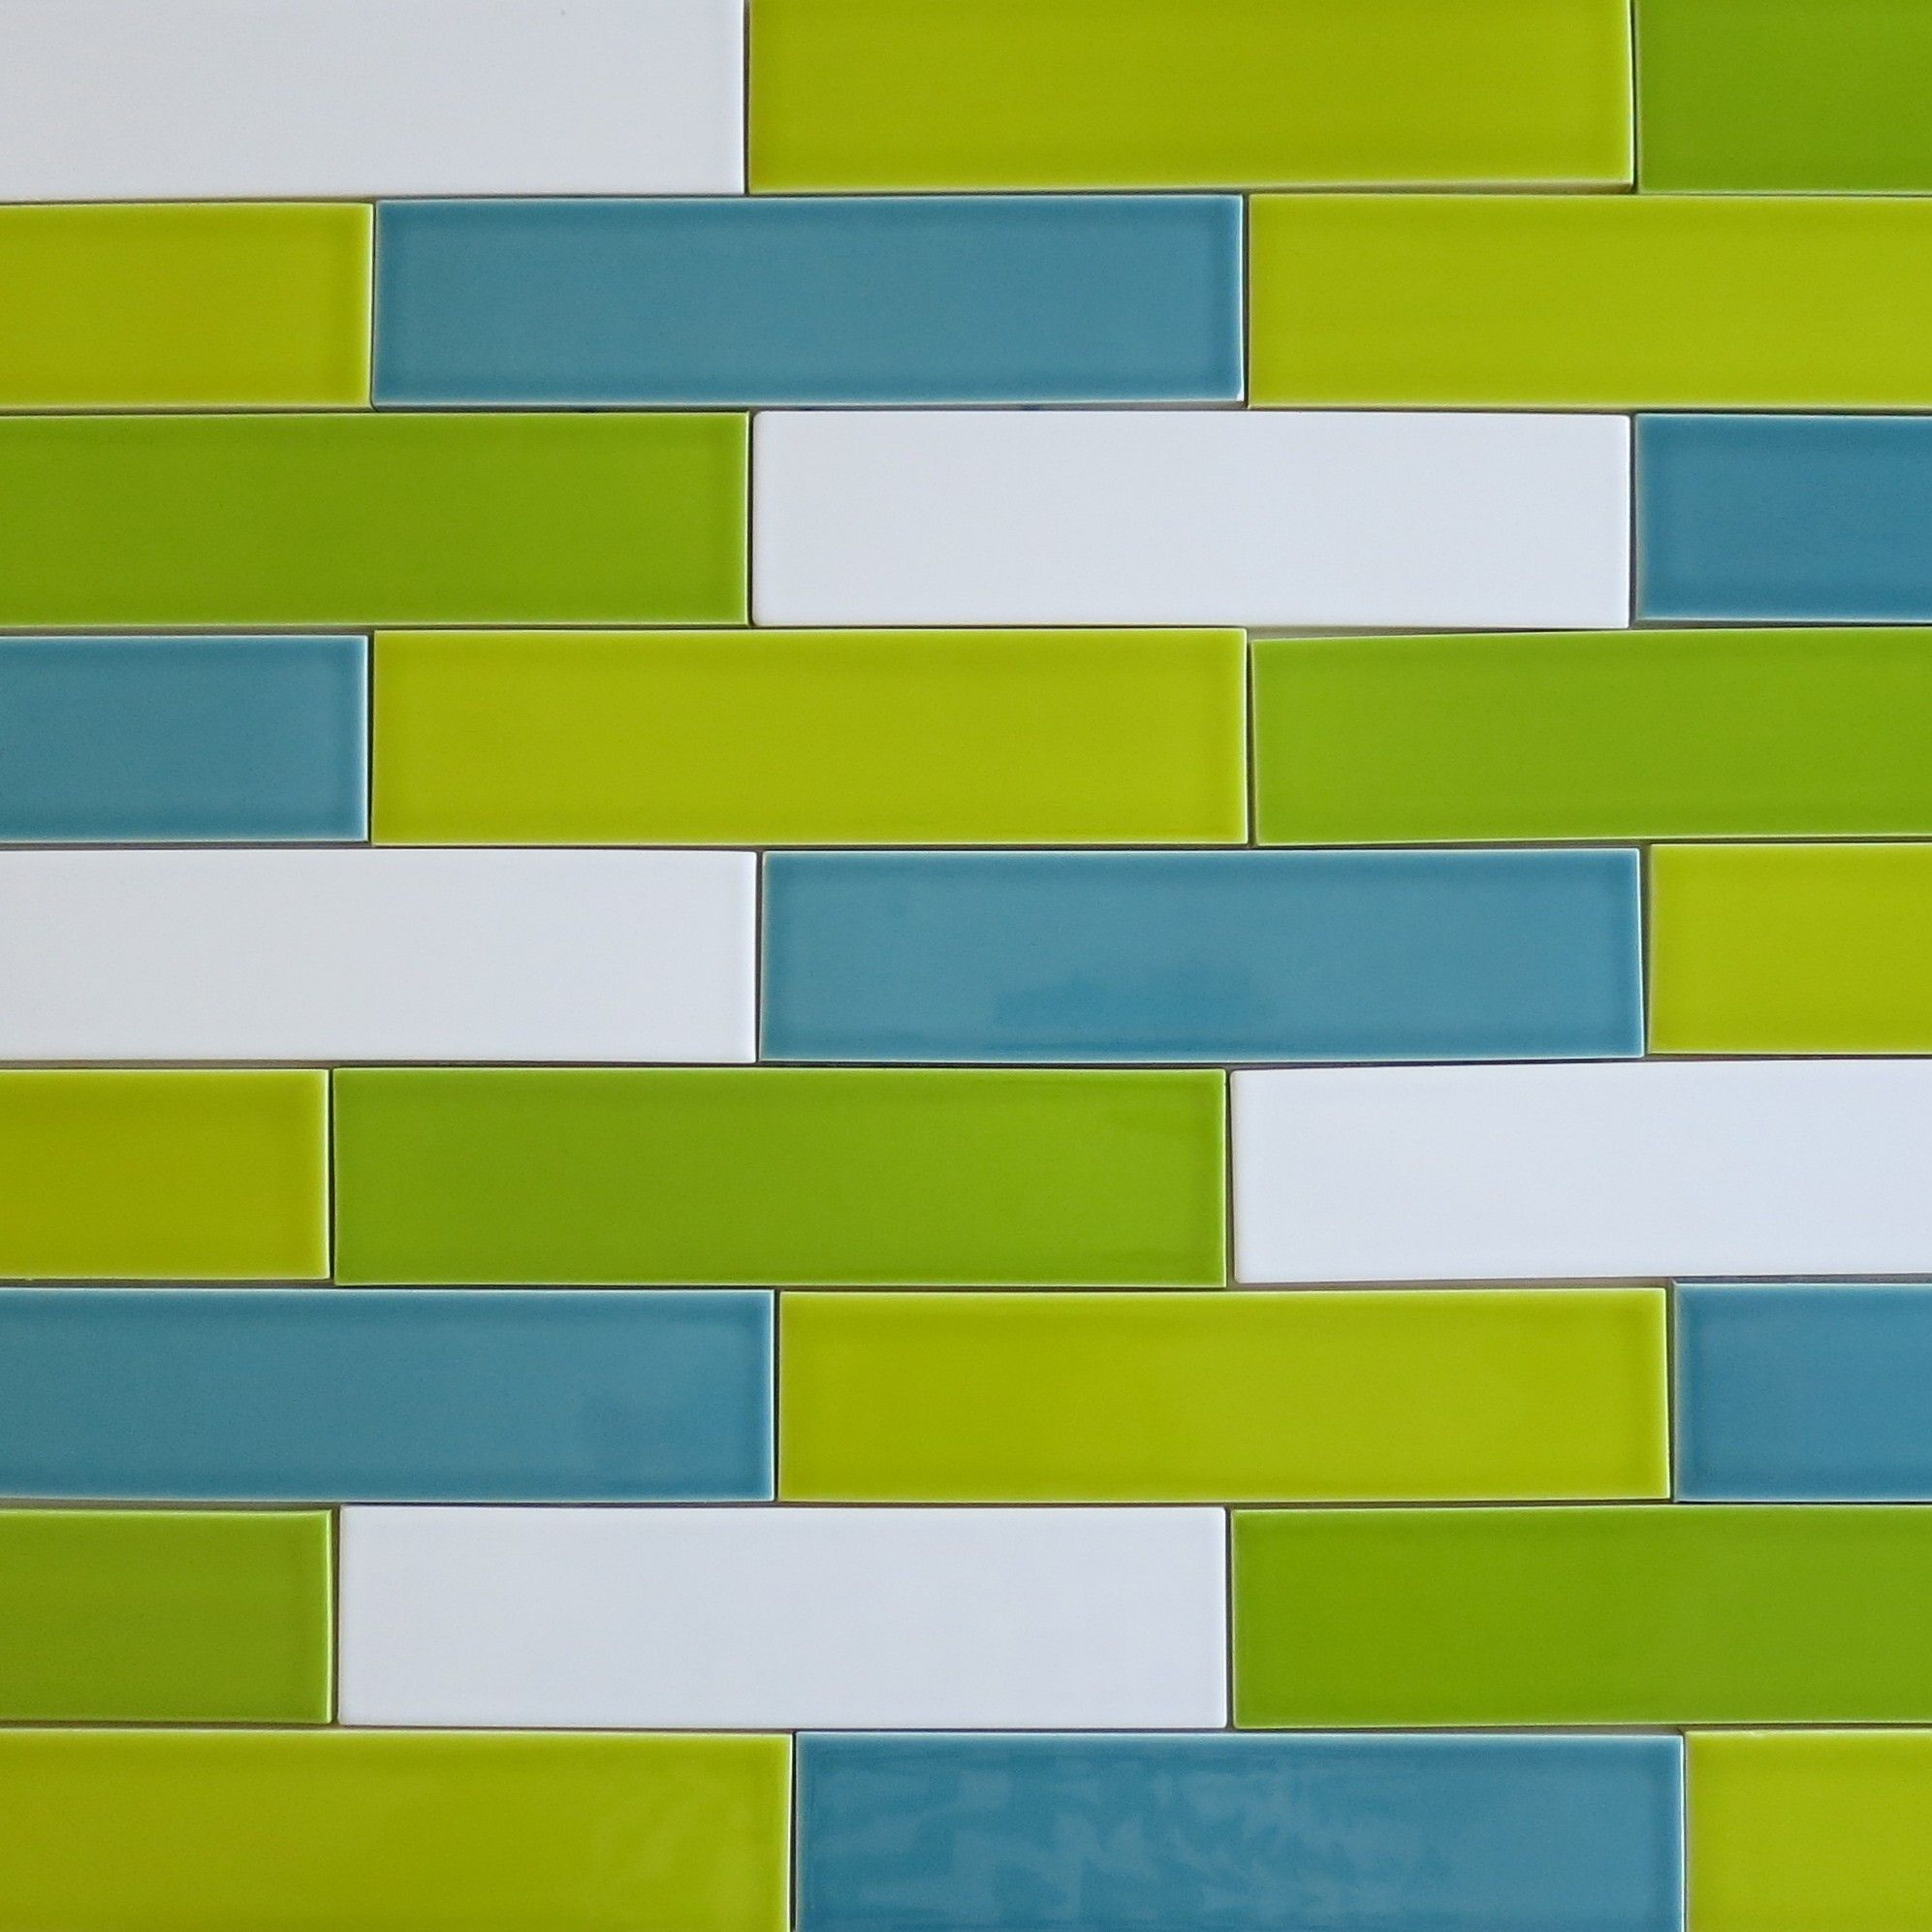 Kiln ceramic 2x8 subway tile chartreuse green multicolor ceramic subway tile dailygadgetfo Image collections